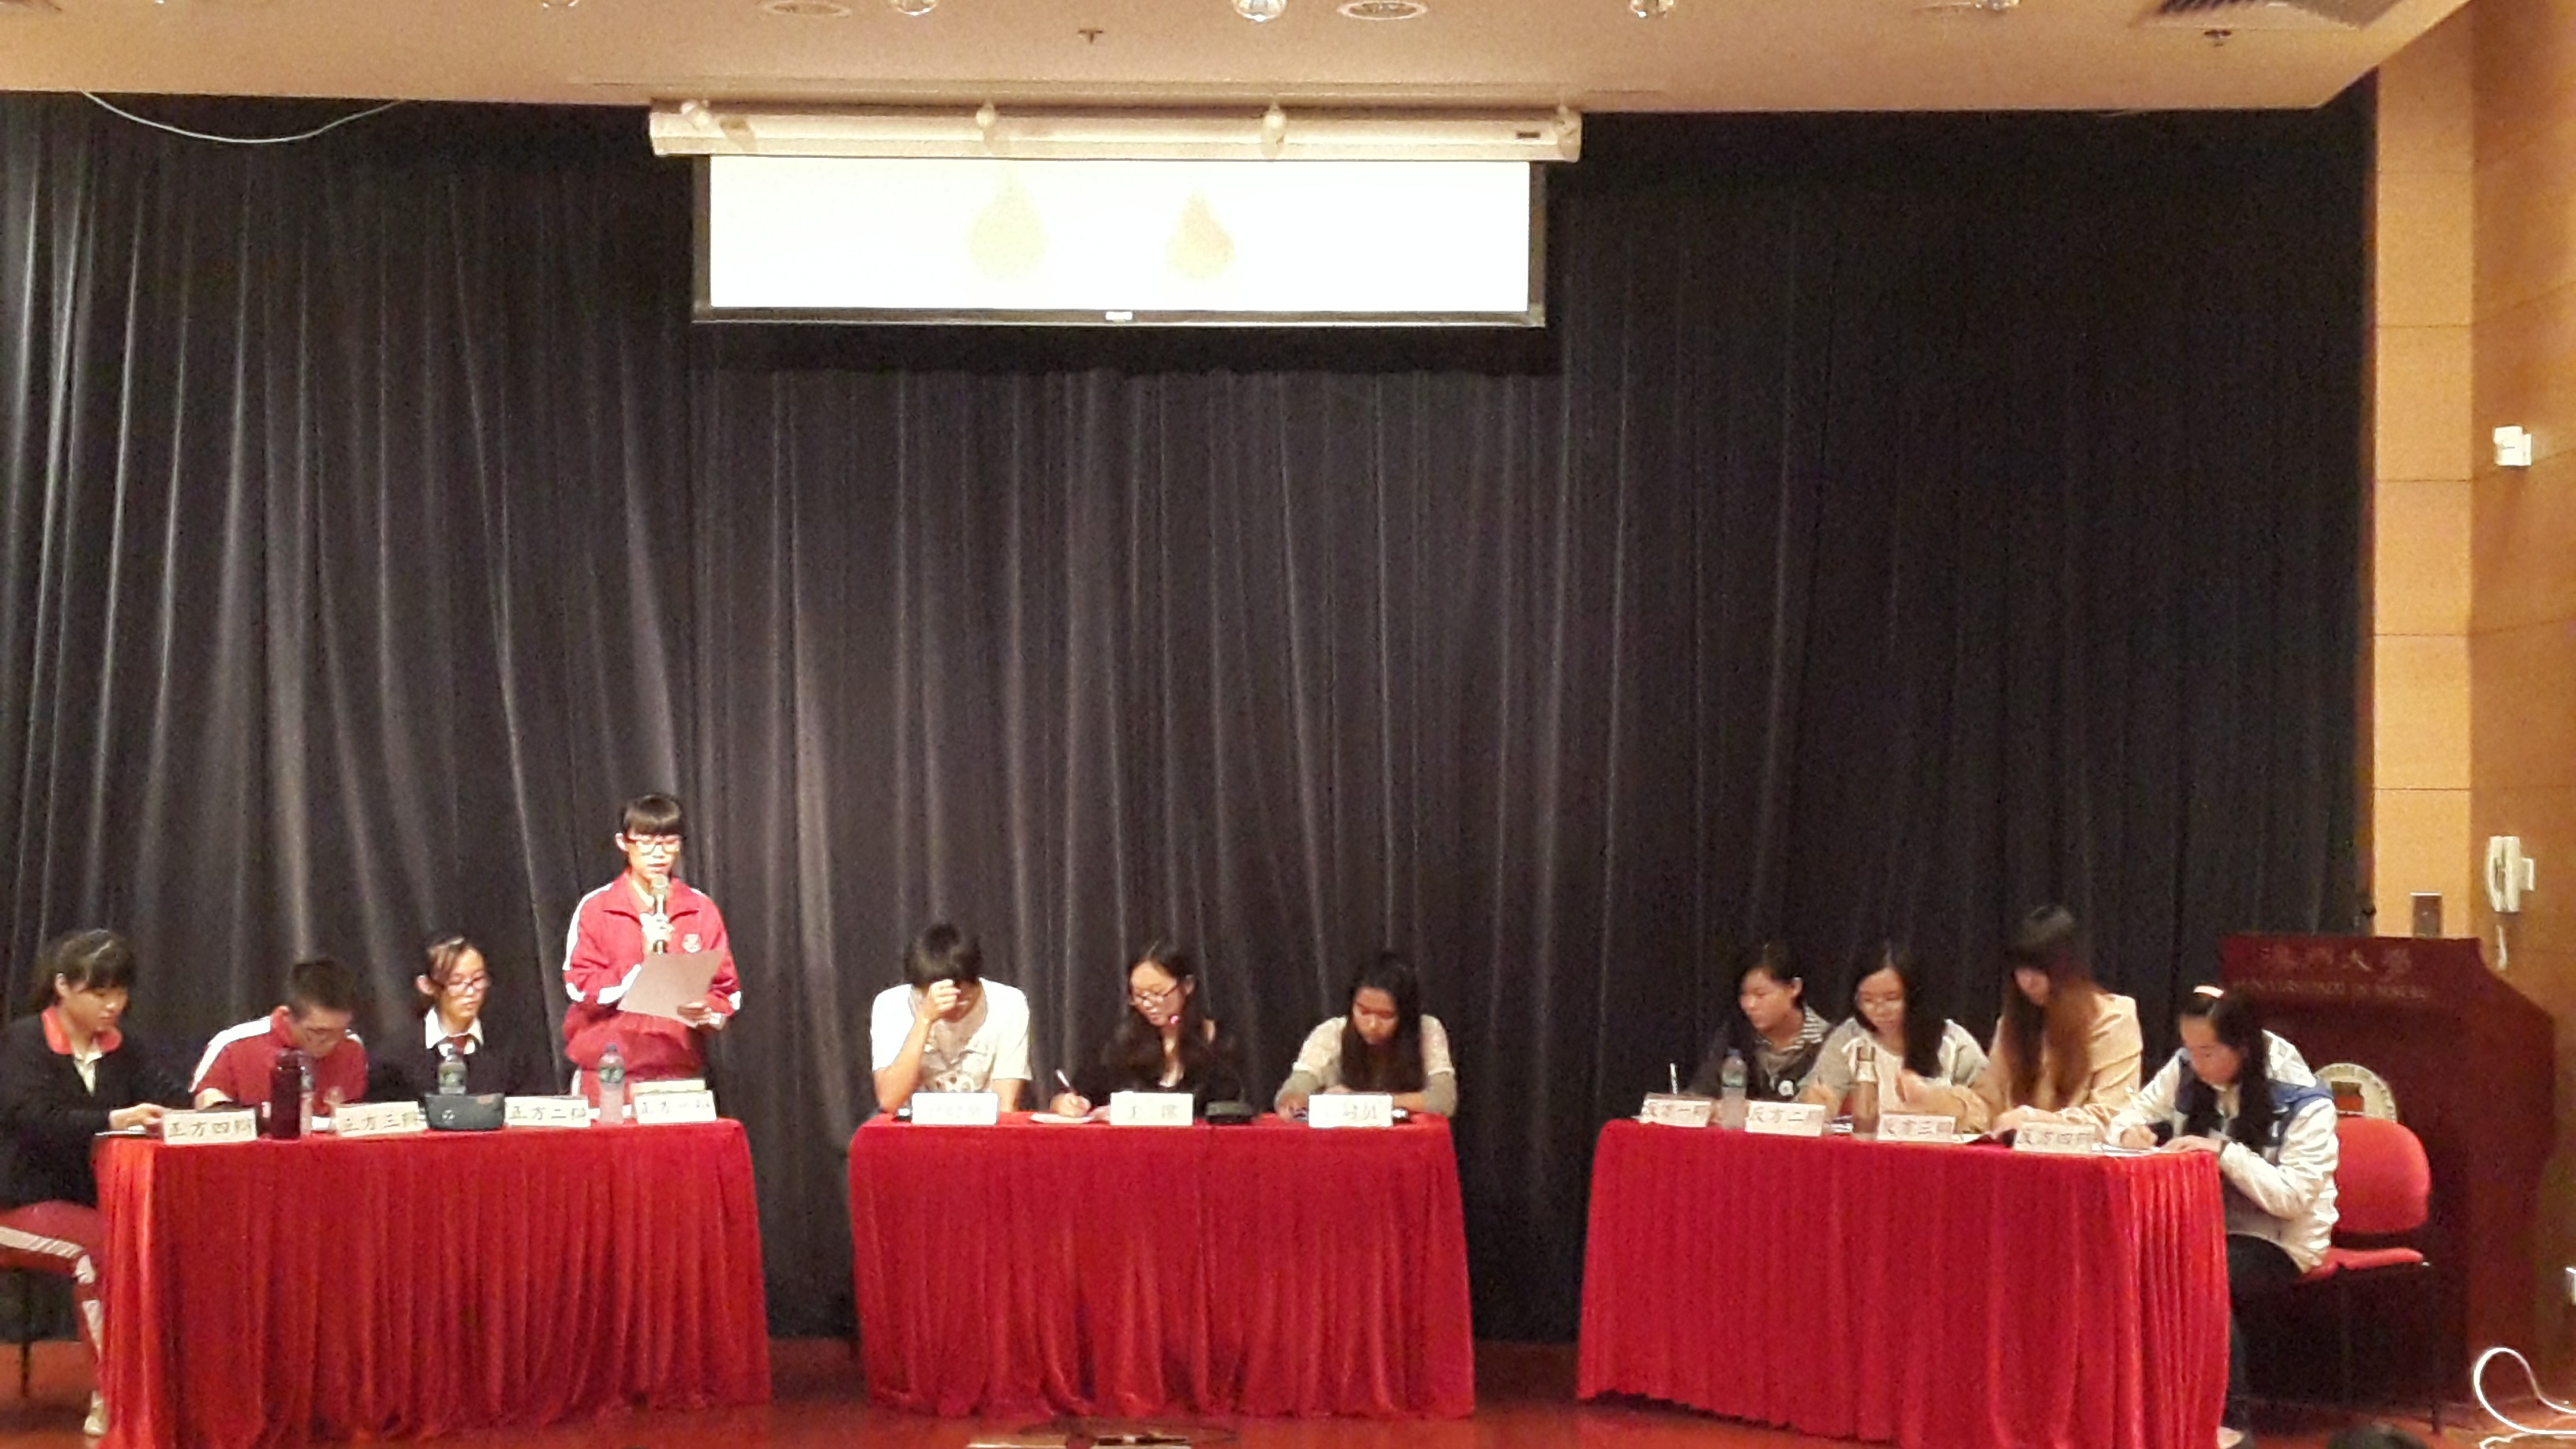 Friendly contest with Hou Kong Middle School debate team